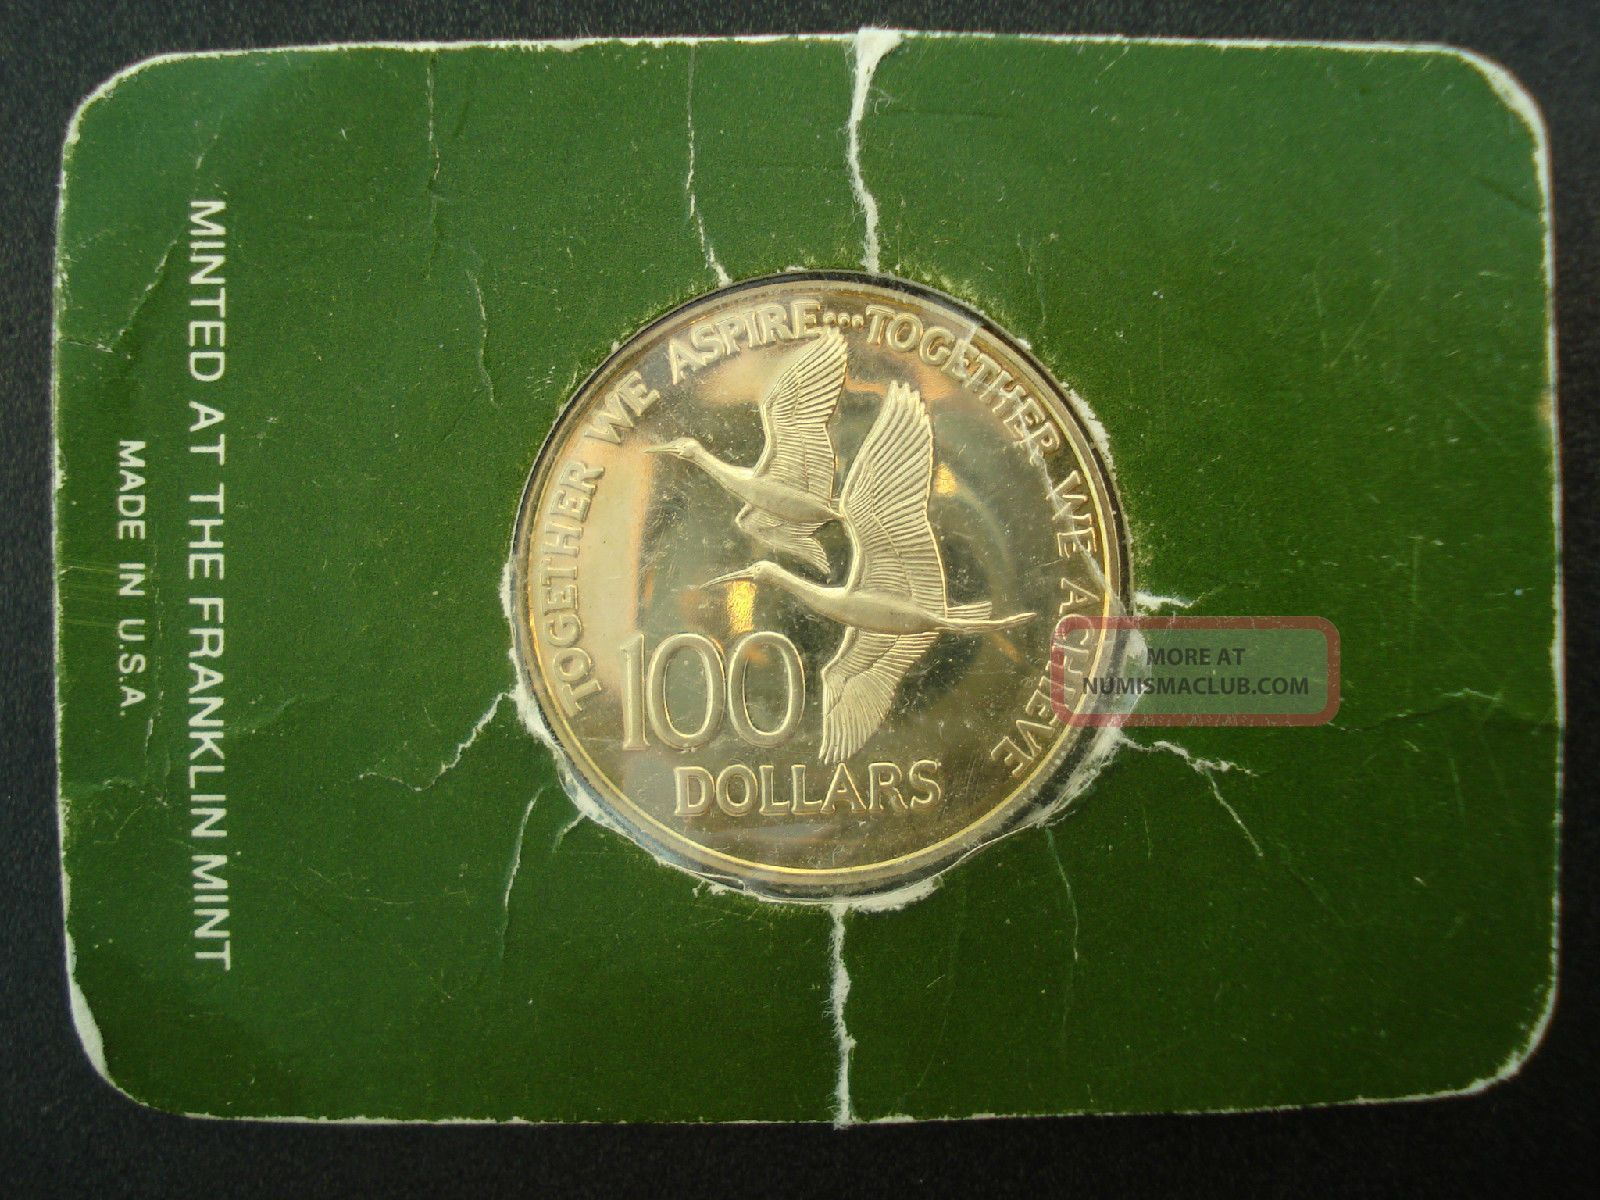 1976 Trinidad Amp Tobago 100 Dollar Proof Gold Coin